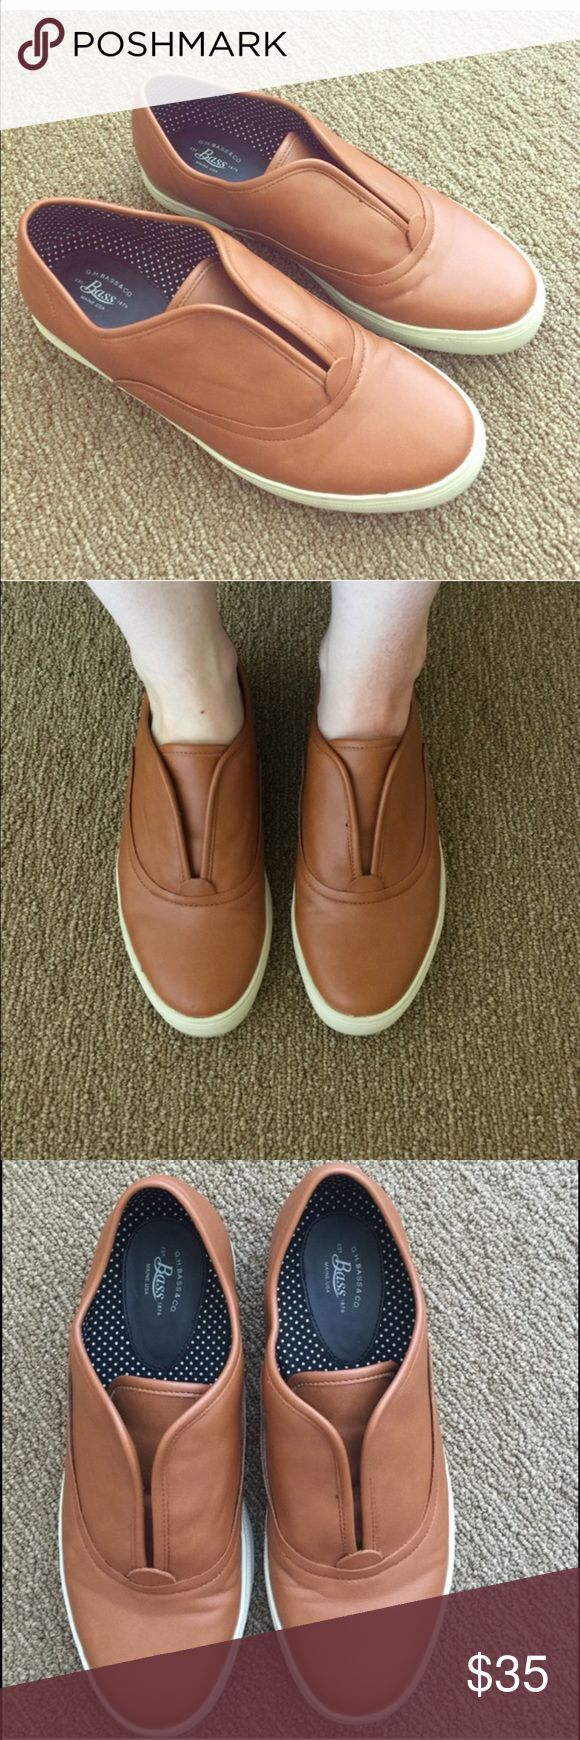 """Bass slip on leather sneakers Bass """"escapade"""" slip on leather sneakers, beautiful tan/brown leather. EUC. True size 8, very comfy. Bass Shoes Flats & Loafers"""